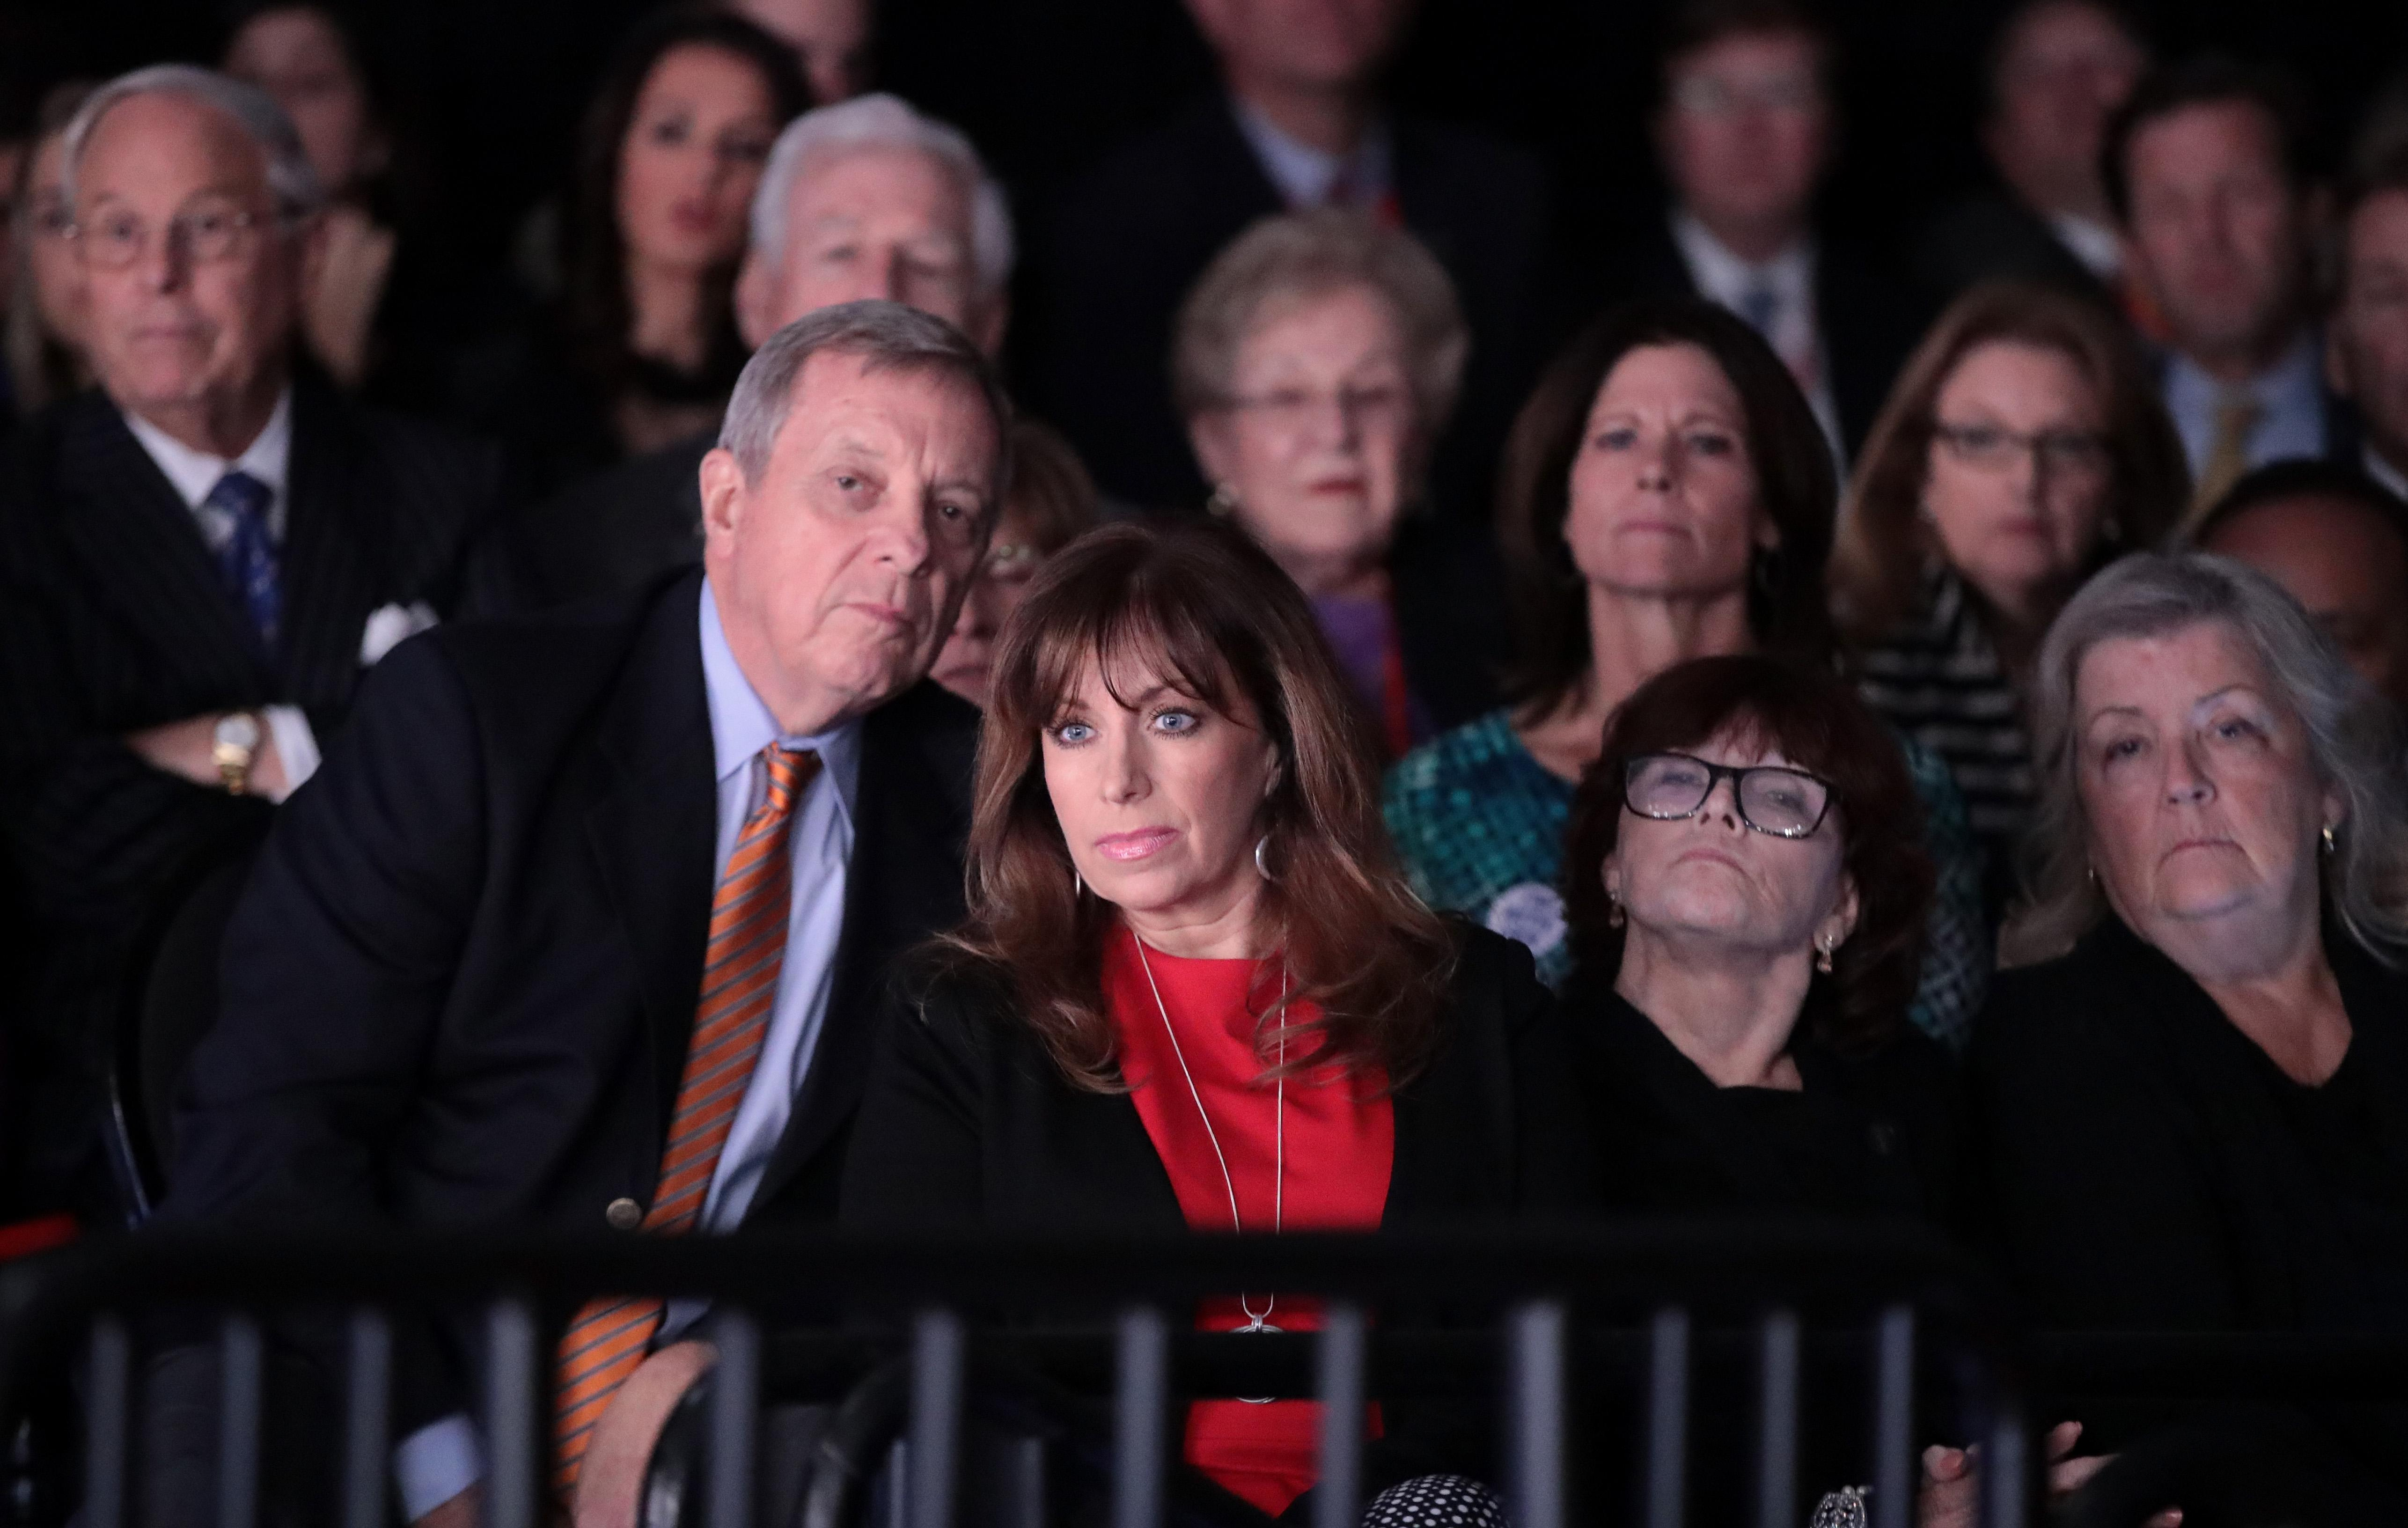 Dick Durbin (left) sits behind (left to right) Paula Jones, Kathleen Willey and Juanita Broaddrick at the presidential debate at Washington University in St. Louis on Oct. 9, 2016. (Photo: Scott Olson/Getty Images)